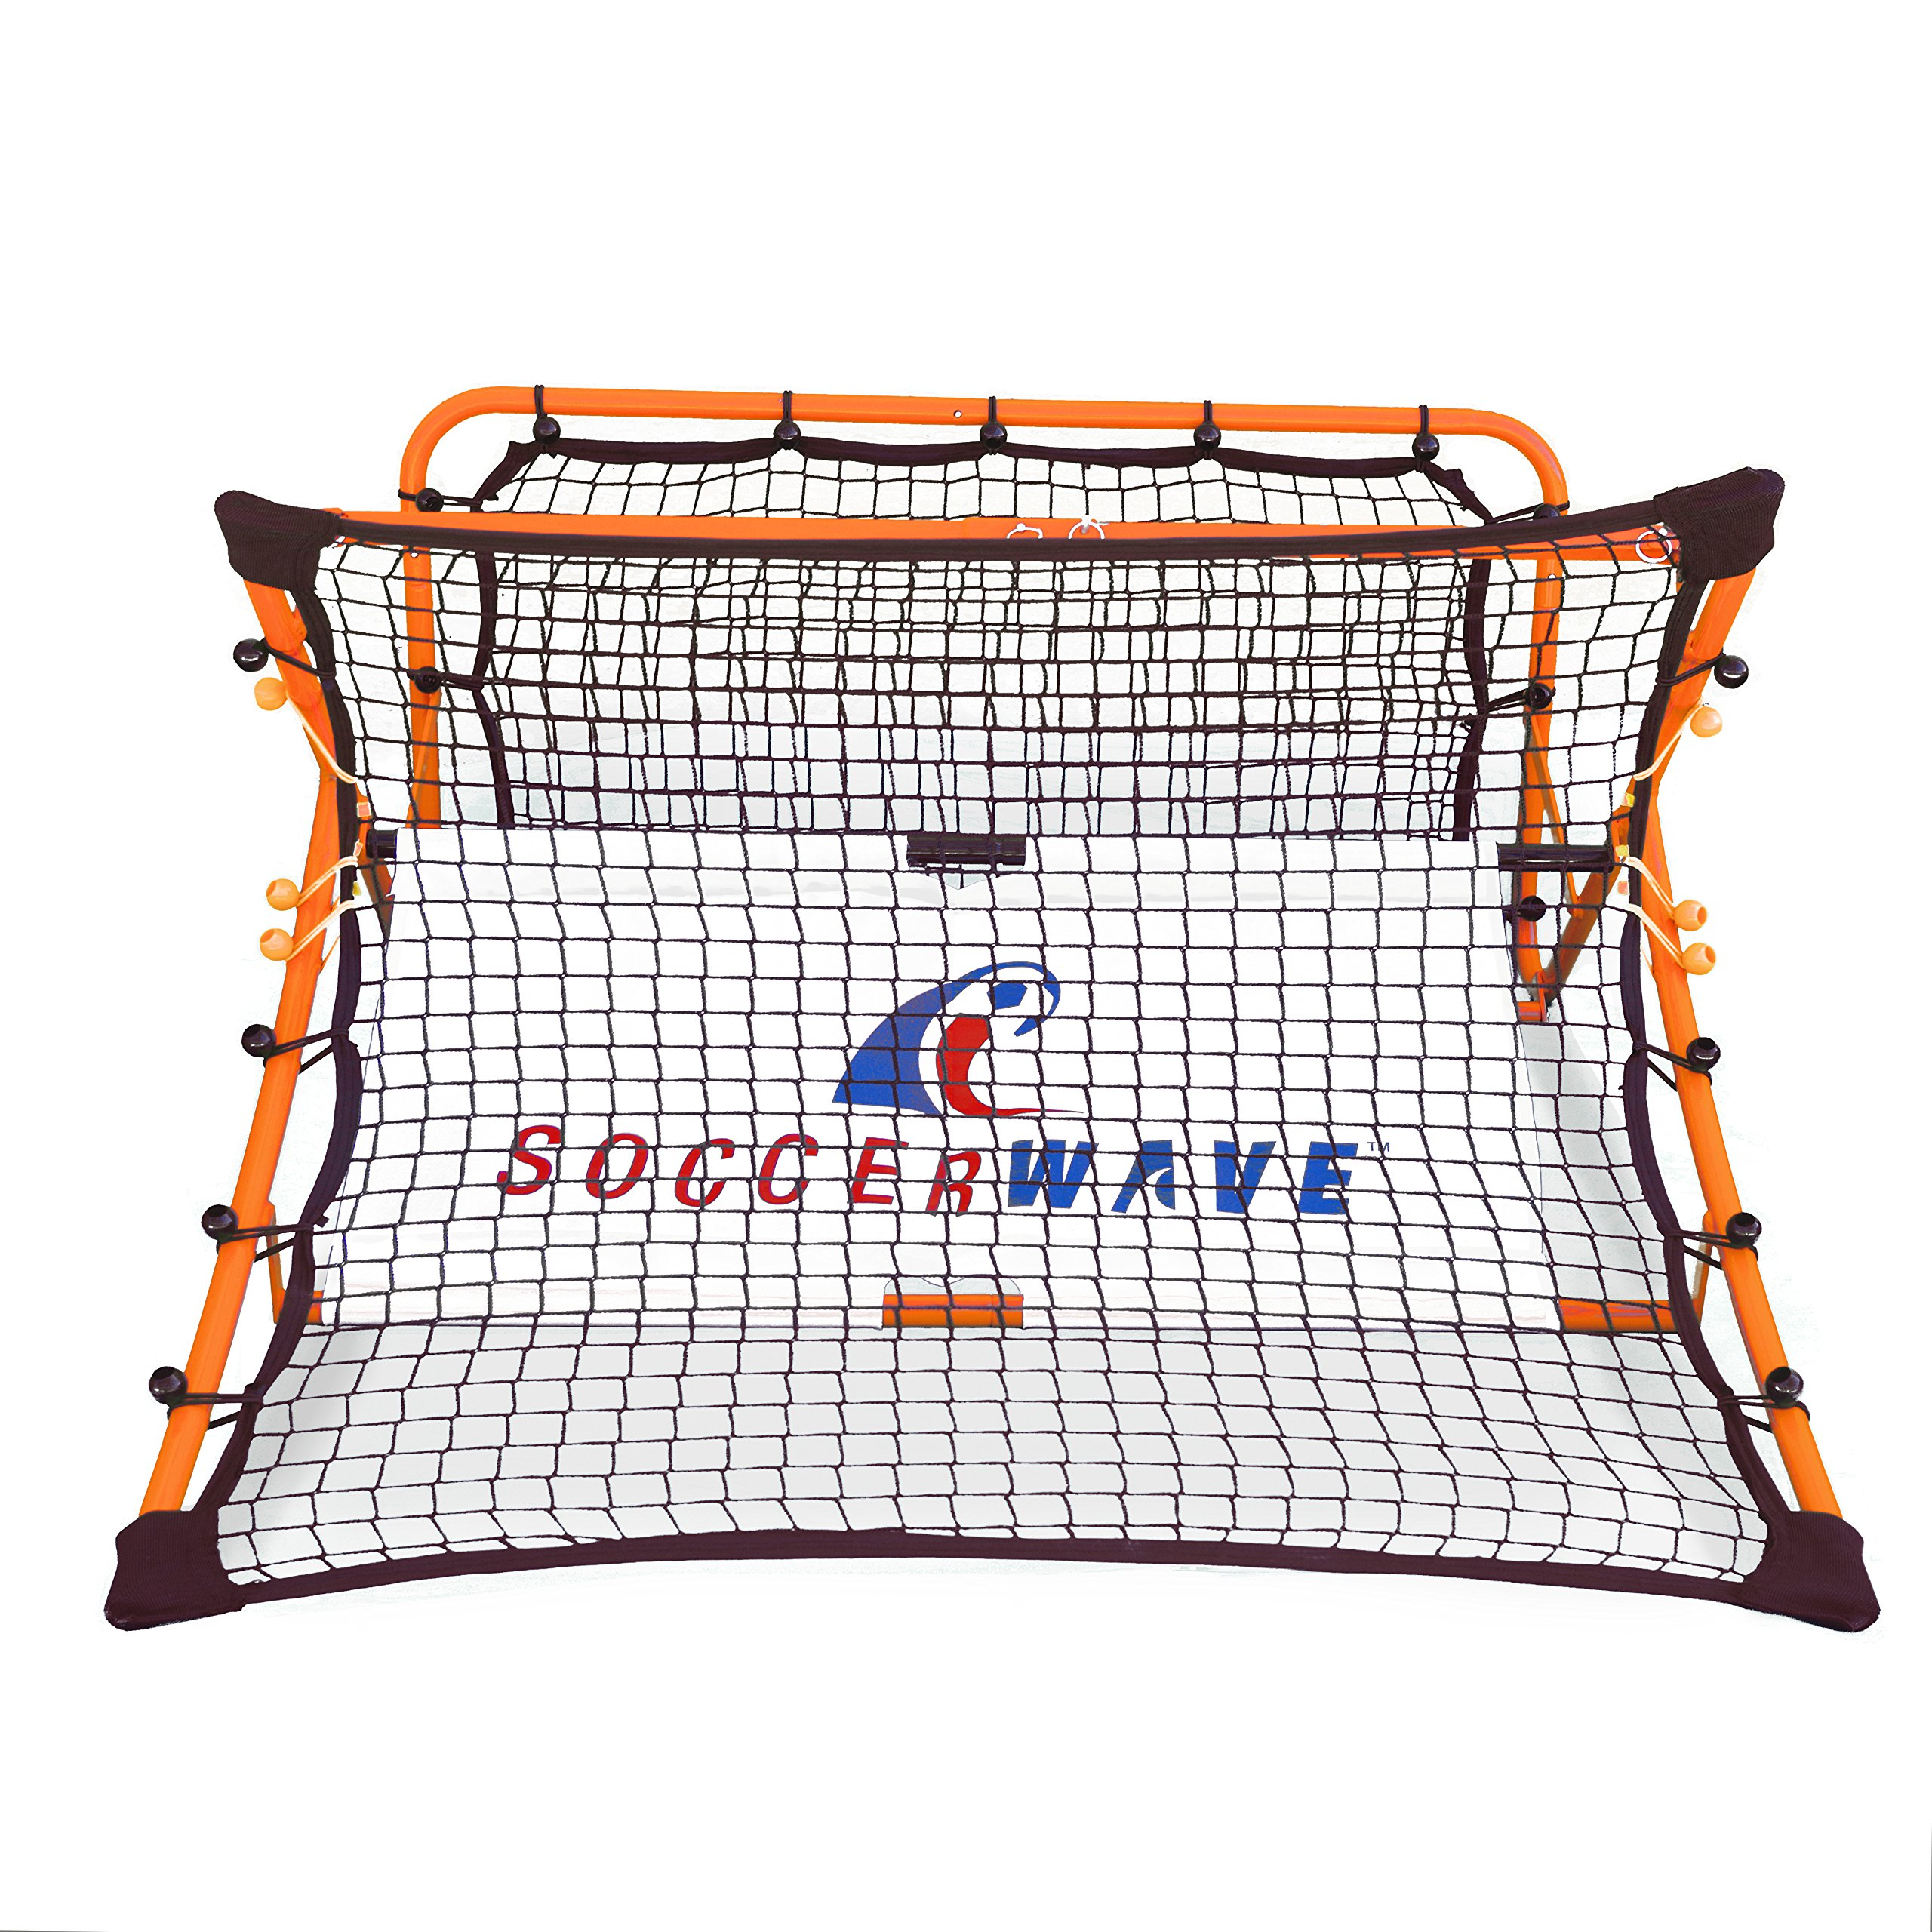 Soccer Rebounder Net by Soccer Wave | SoccerWave Jr. 2 in 1 Skill Trainer | Designed to Refine Trapping and Passing Accuracy by Soccer Wave